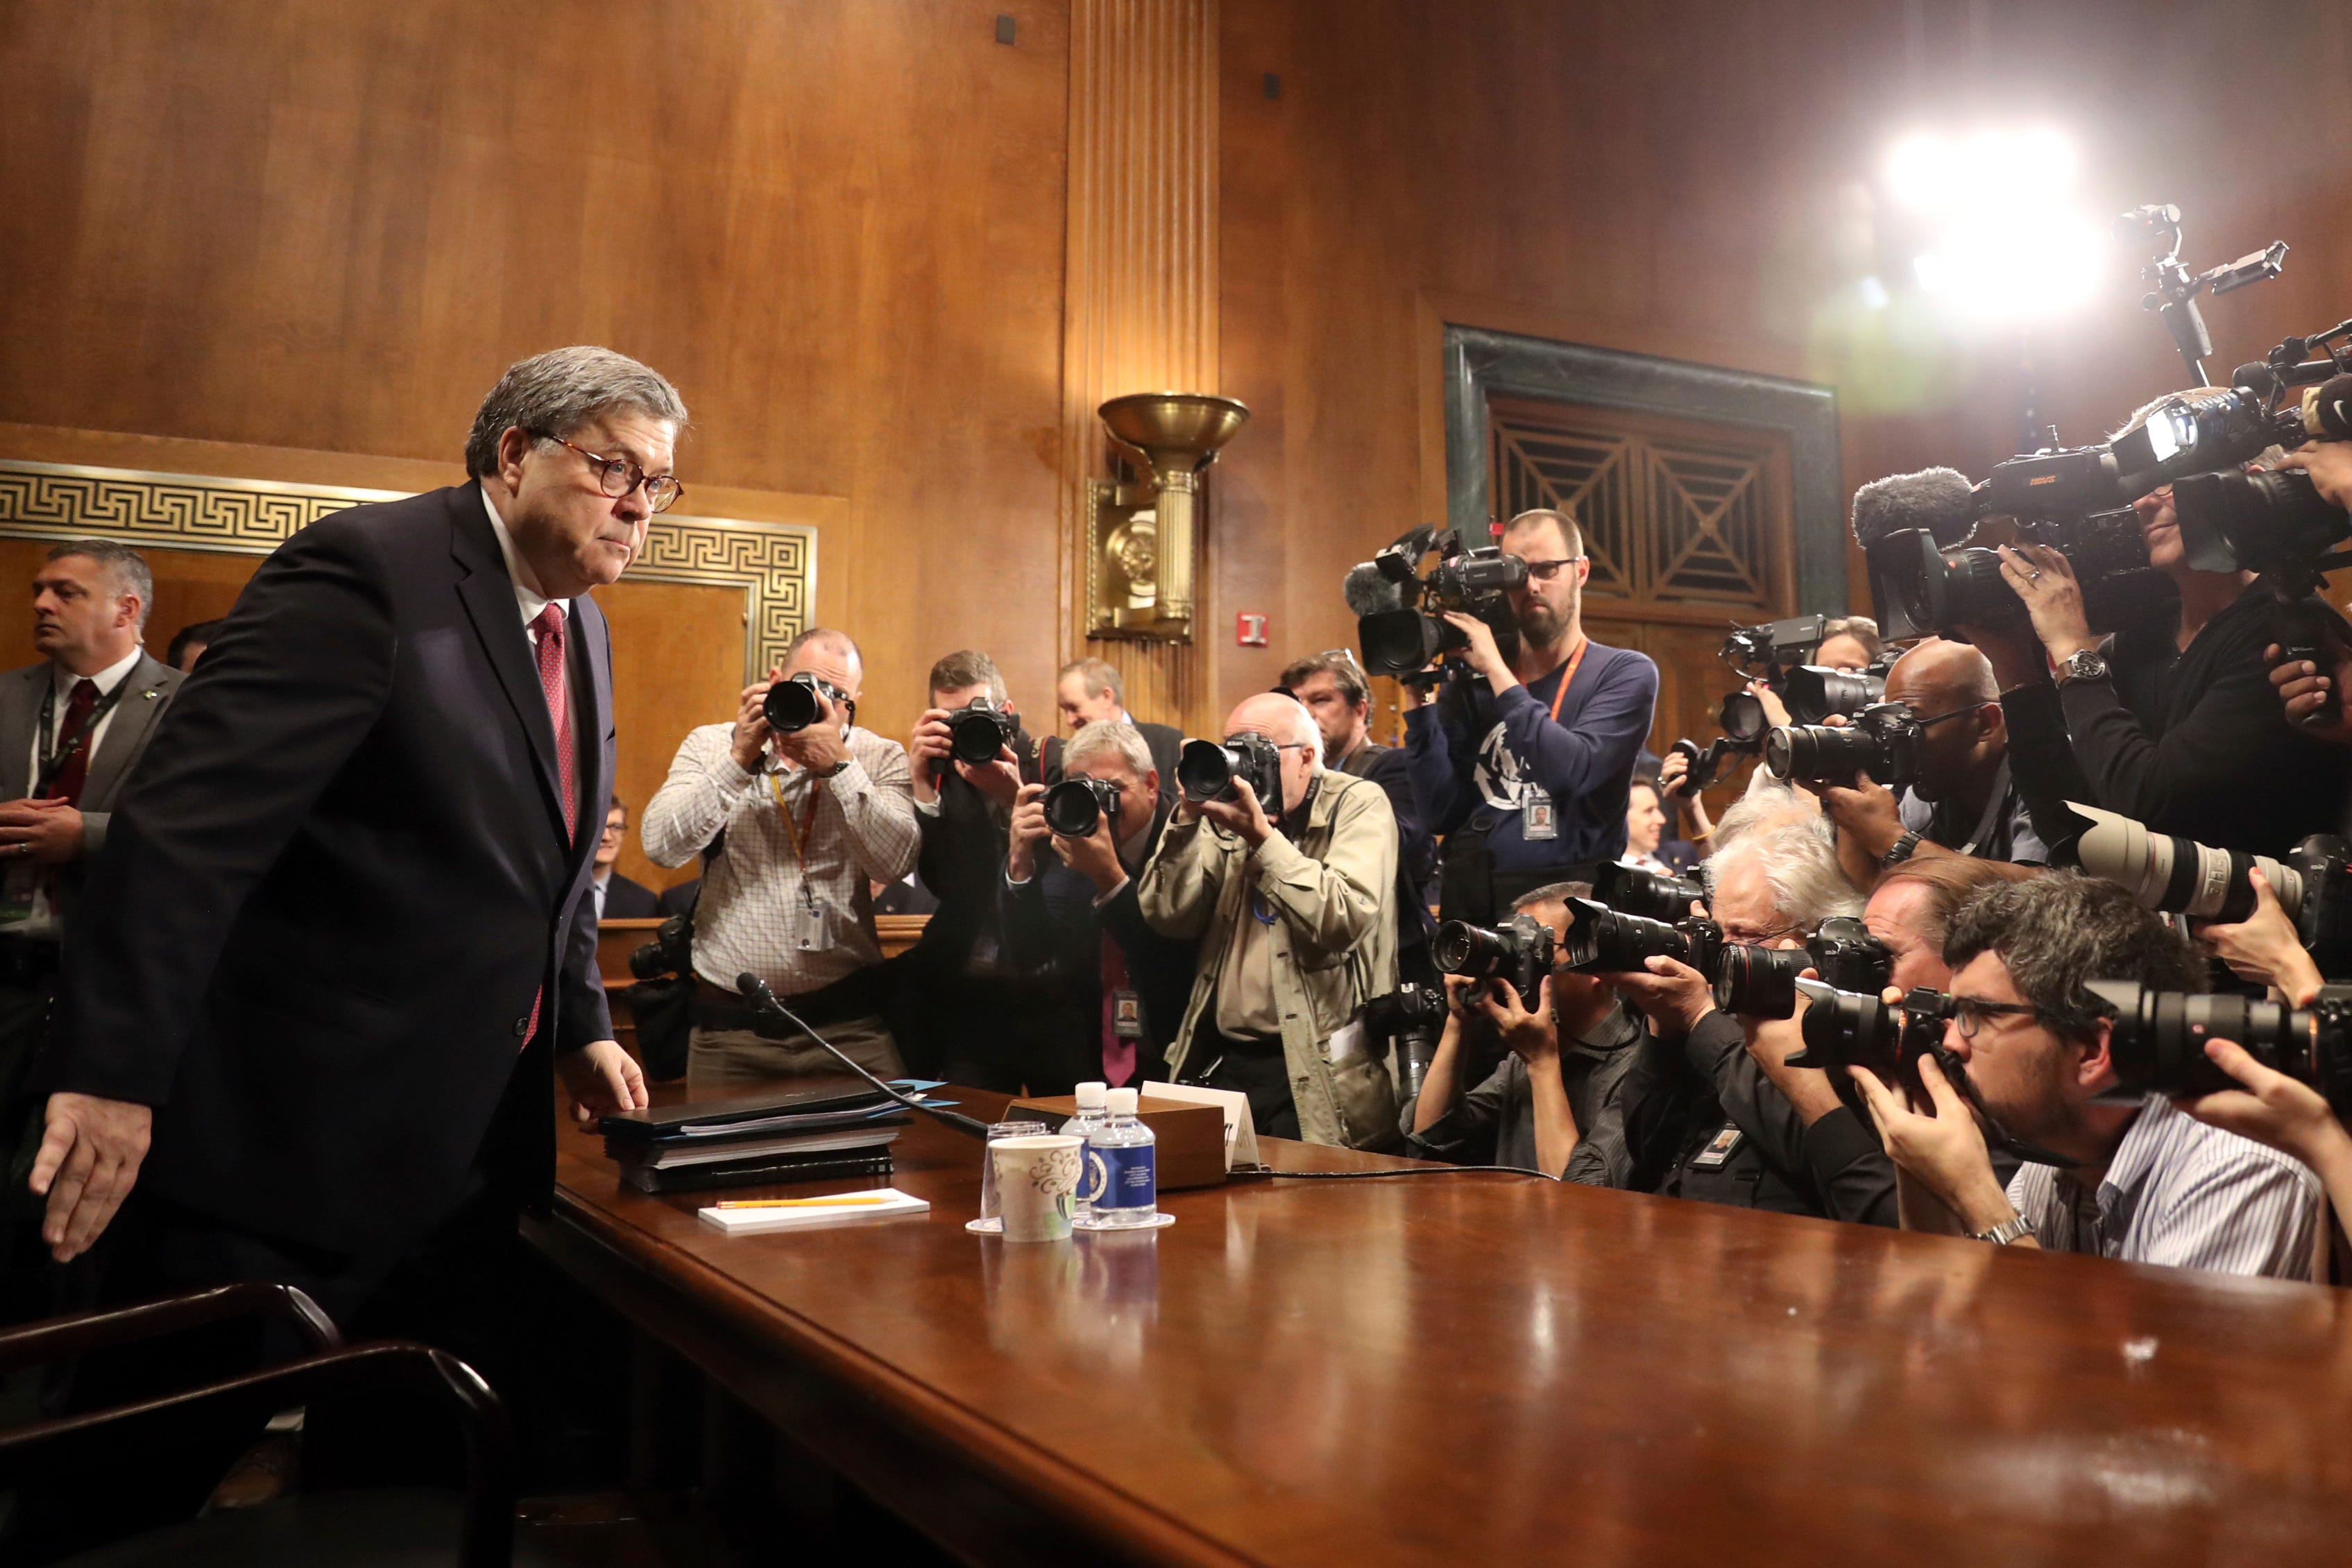 Attorney General William Barr arrives to testify during a Senate Judiciary Committee hearing on Capitol Hill in Washington.